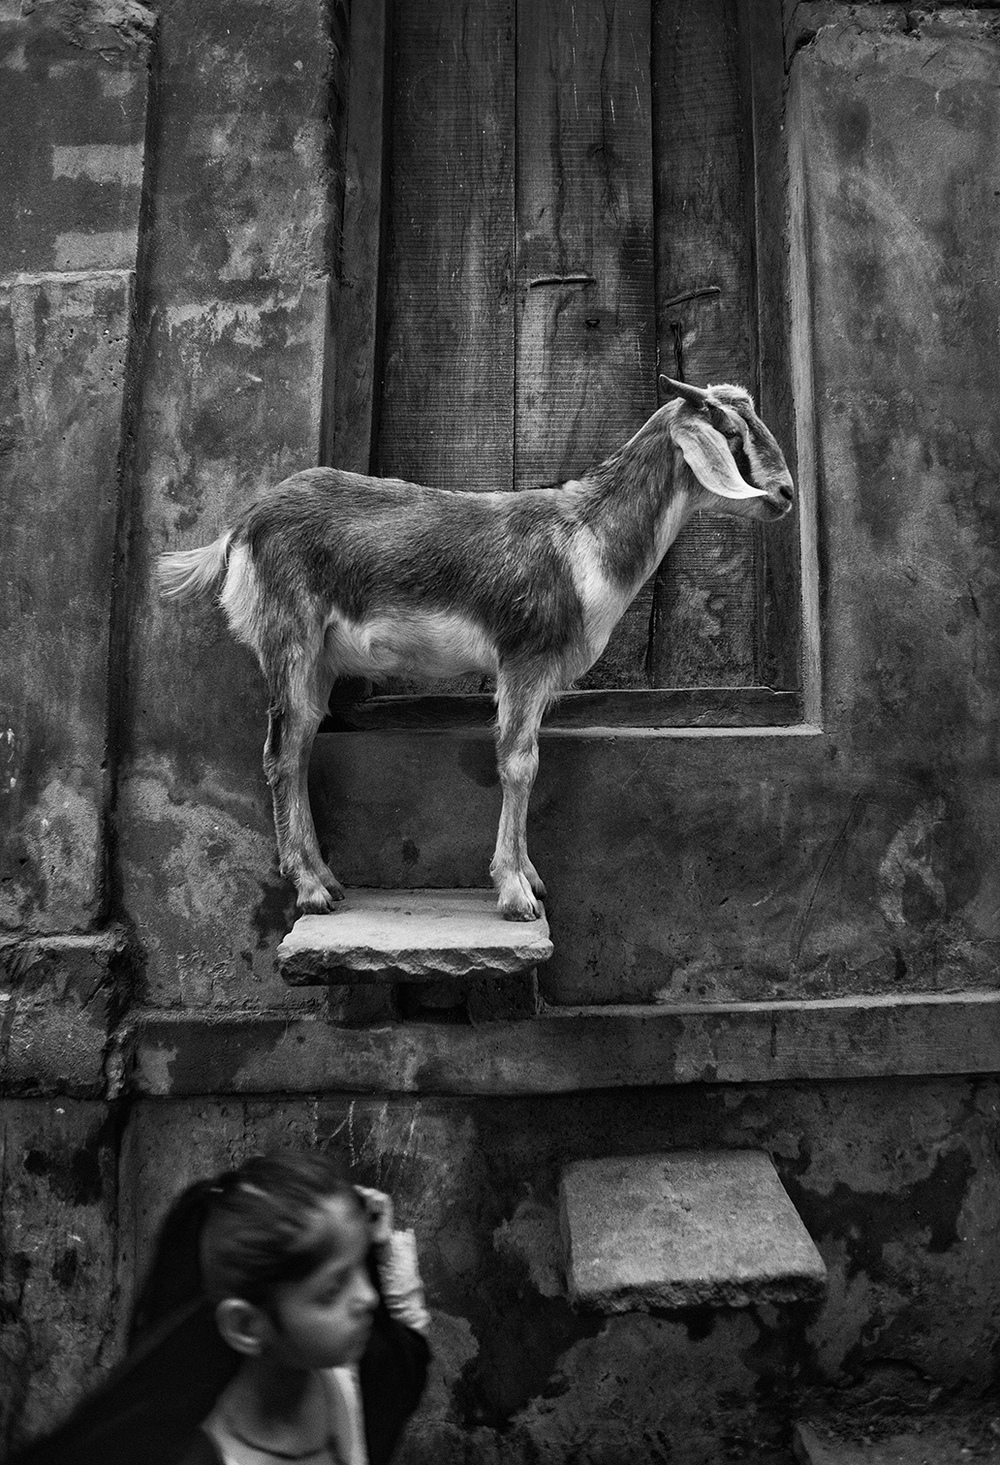 """Old City, Varanasi""          photo copyright : Russell Shakespeare 2015"